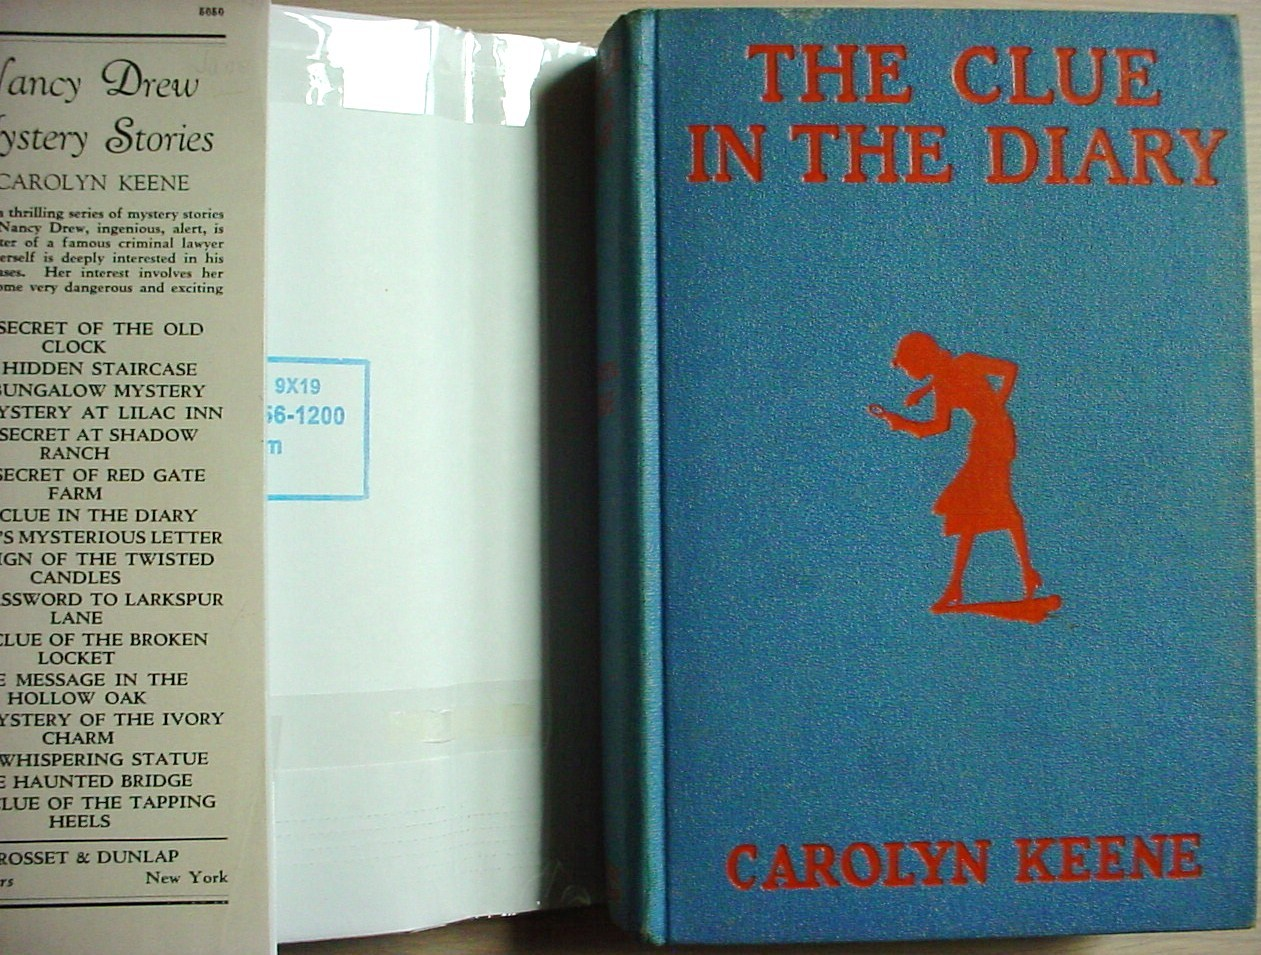 Nancy Drew mystery #7 THE CLUE IN THE DIARY hcdj 1940A-20 FARAH'S Carolyn Keene